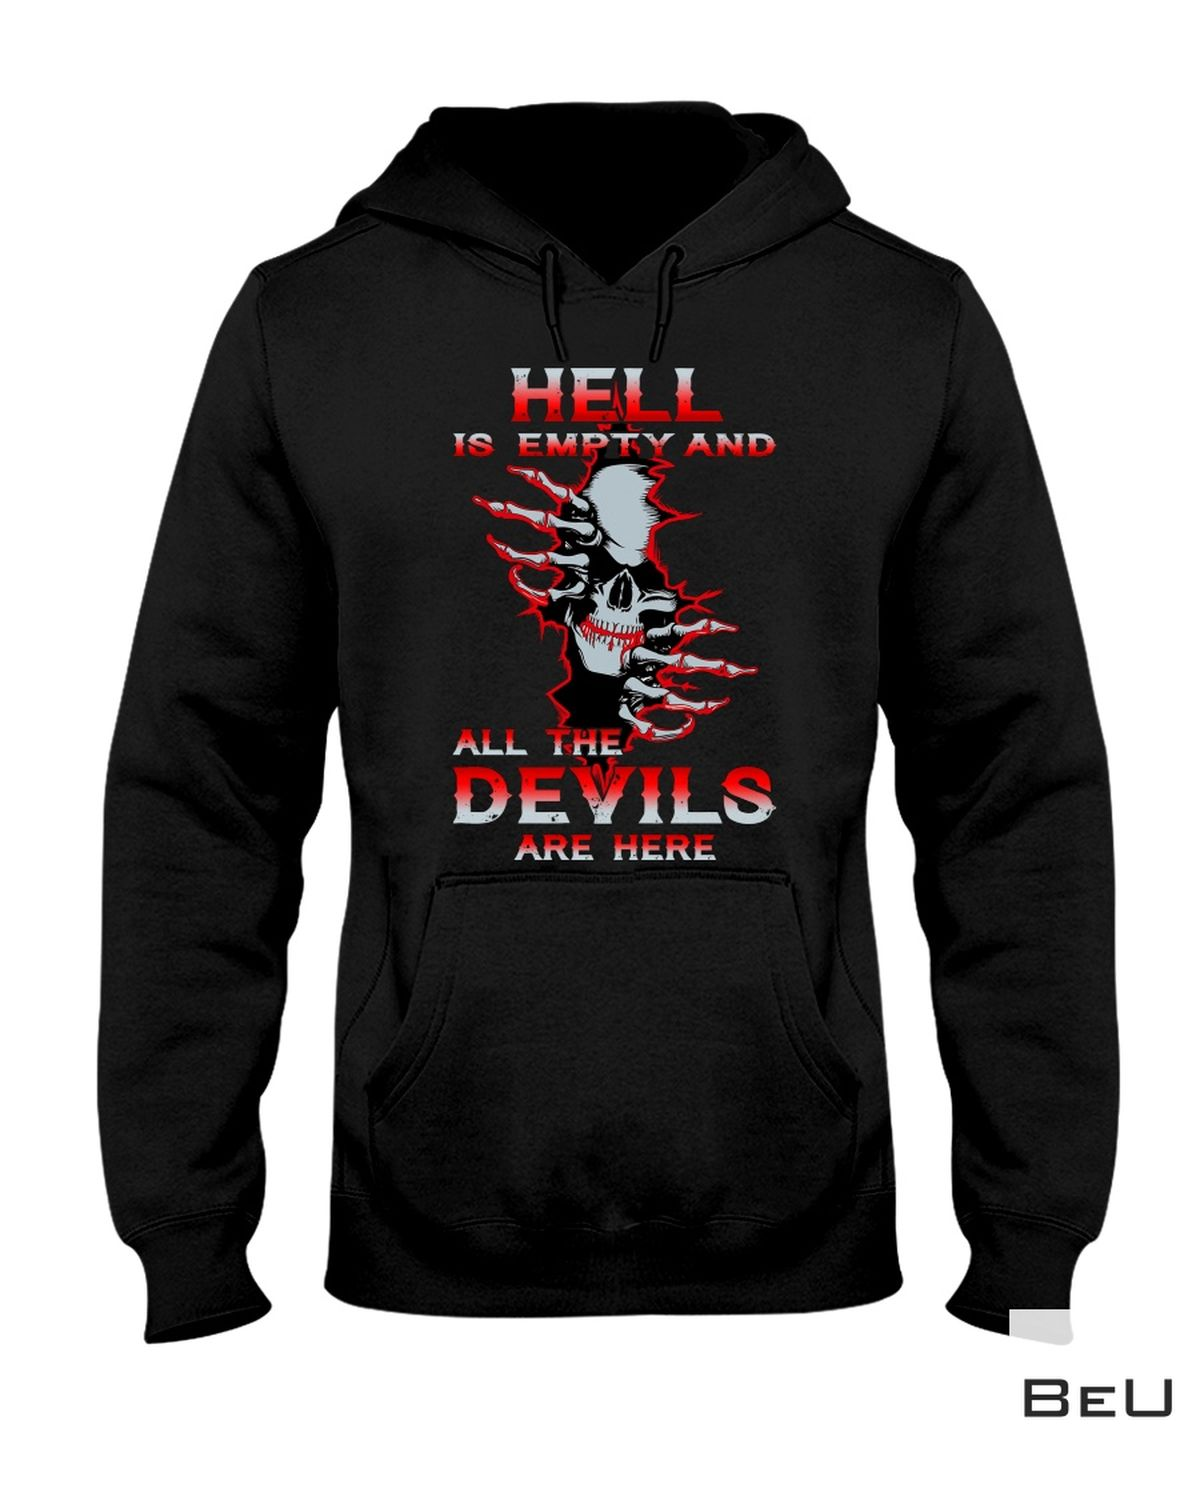 Hell Is Empty And All The Devils Are Here Shirt a